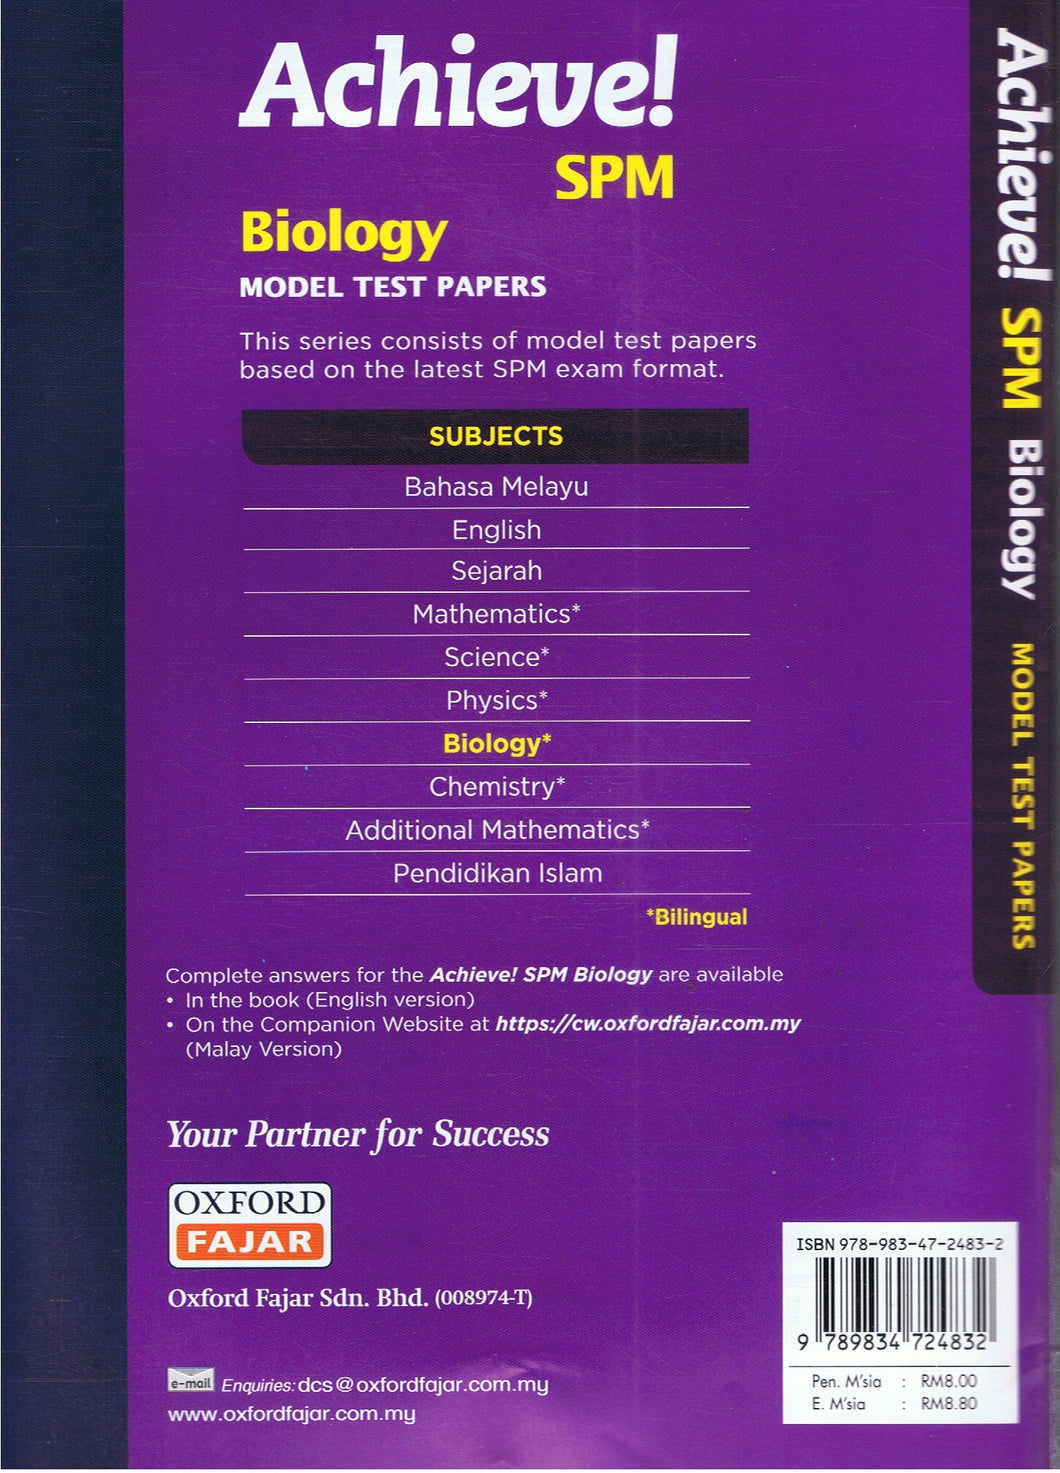 Oxford Fajar-Achieve! SPM: Biology (Model Test Papers)-9789834724832-BukuDBP.com